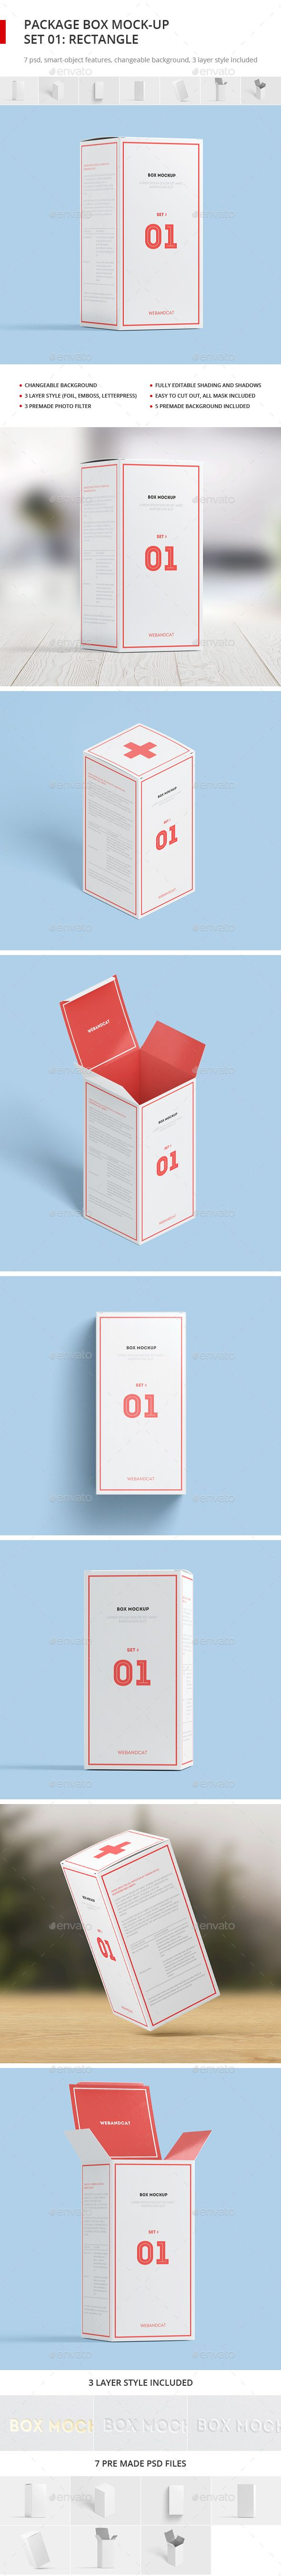 Download Package Box Mock Up Set 1 Rectangle Box Packaging Mockup Mockup Design Box Mockup